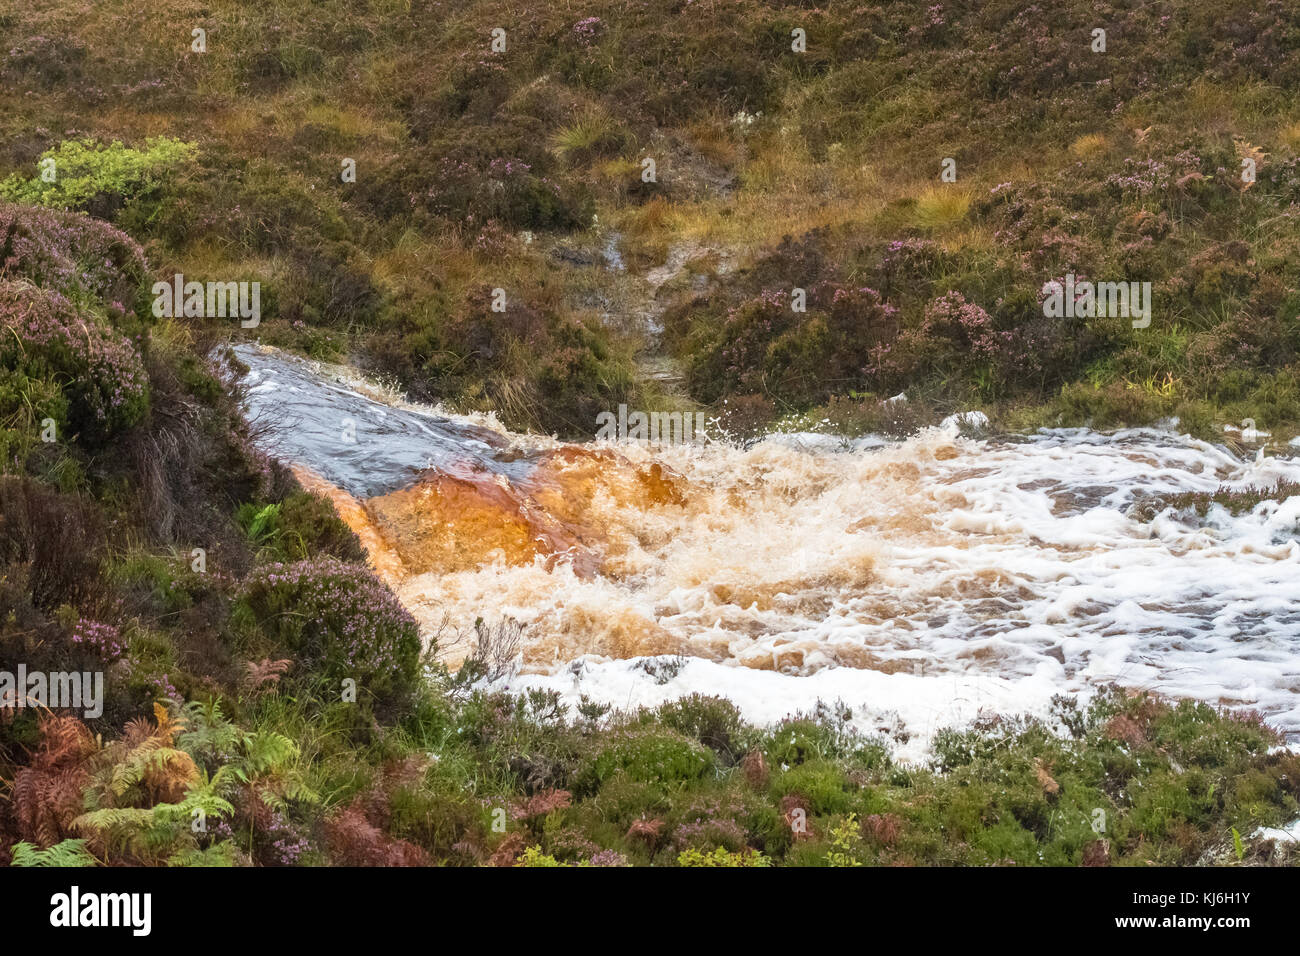 fast flowing peat stained river with foam after heavy rain - Hoy, Orkney, Scotland, UK - Stock Image